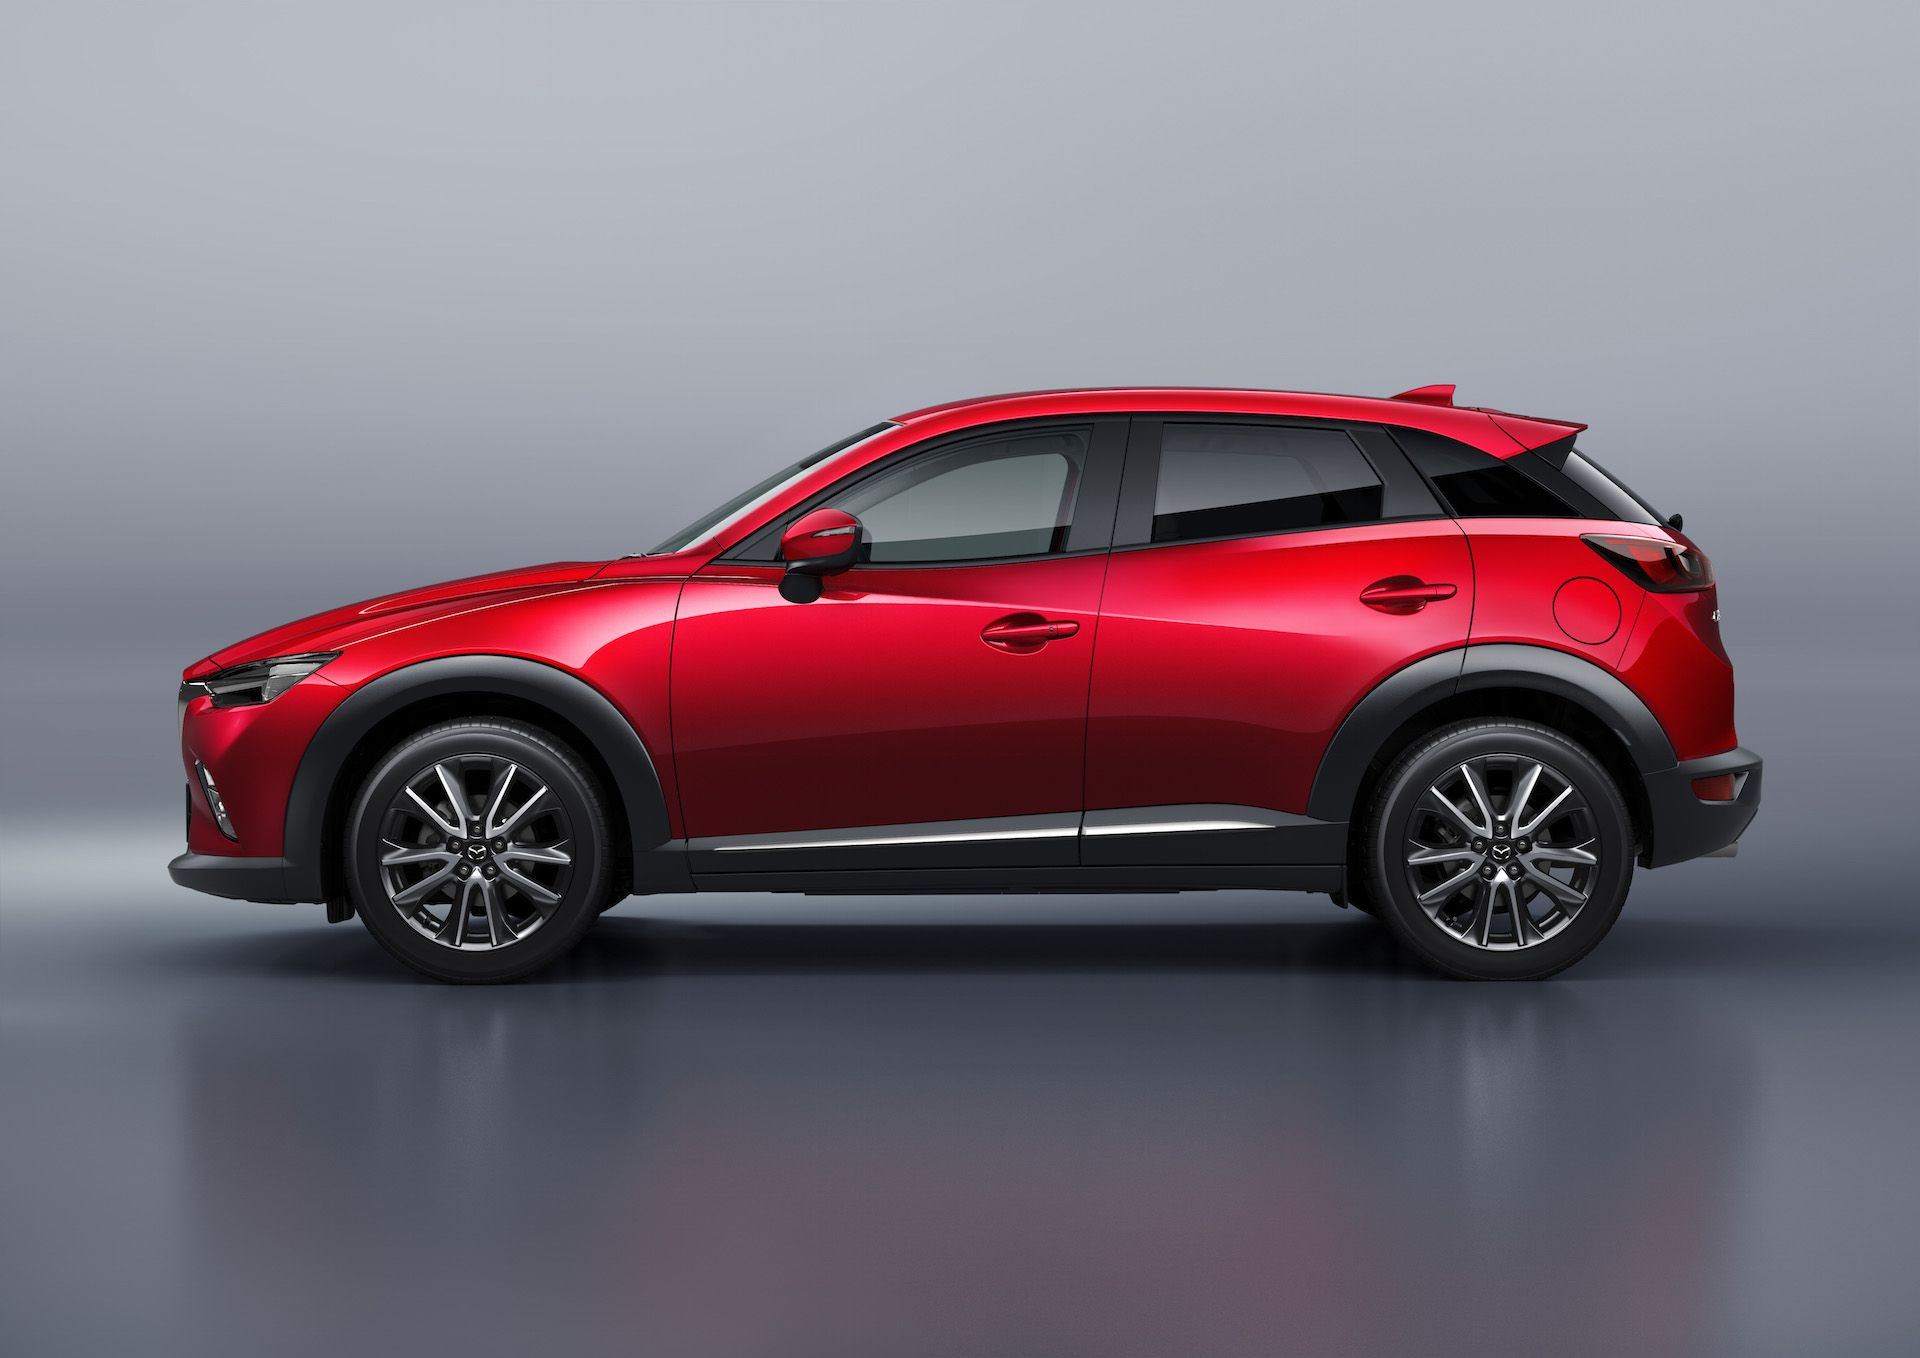 The 59 best images about Mazda on Pinterest | Sporty, Cars and Sedans